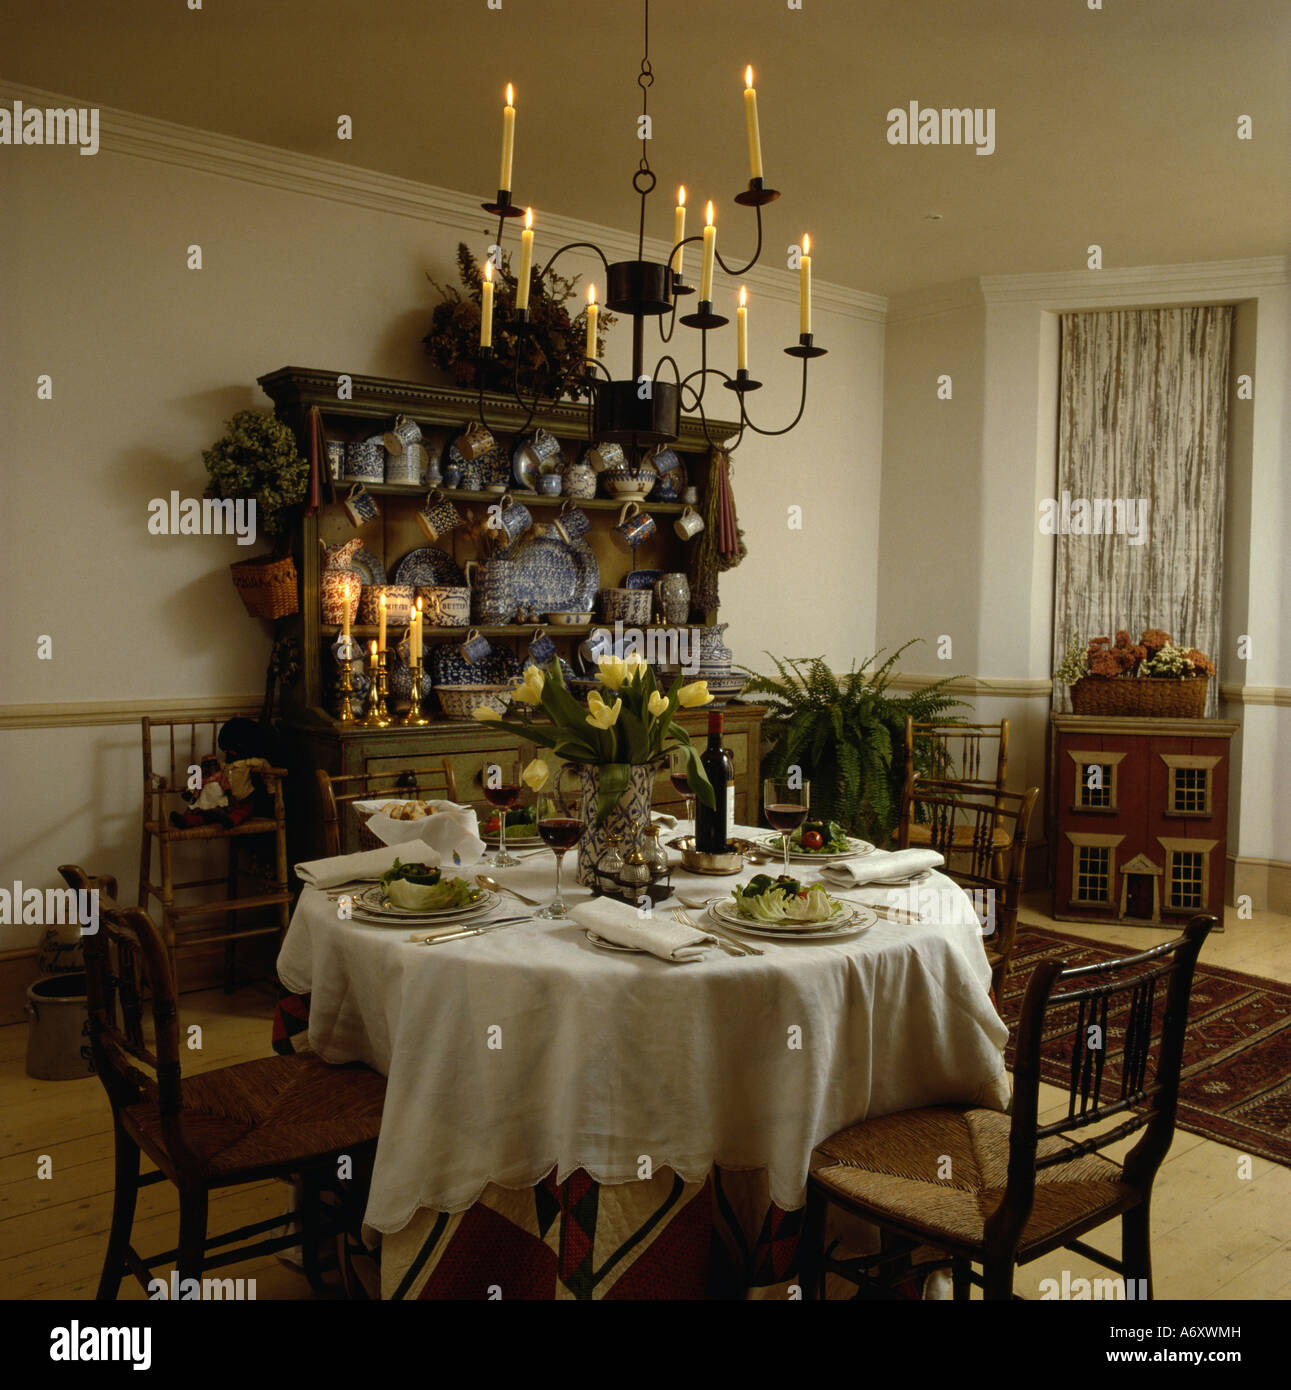 Terrific Candle Chandelier Above Table Set For Lunch With White Cloth Download Free Architecture Designs Pushbritishbridgeorg